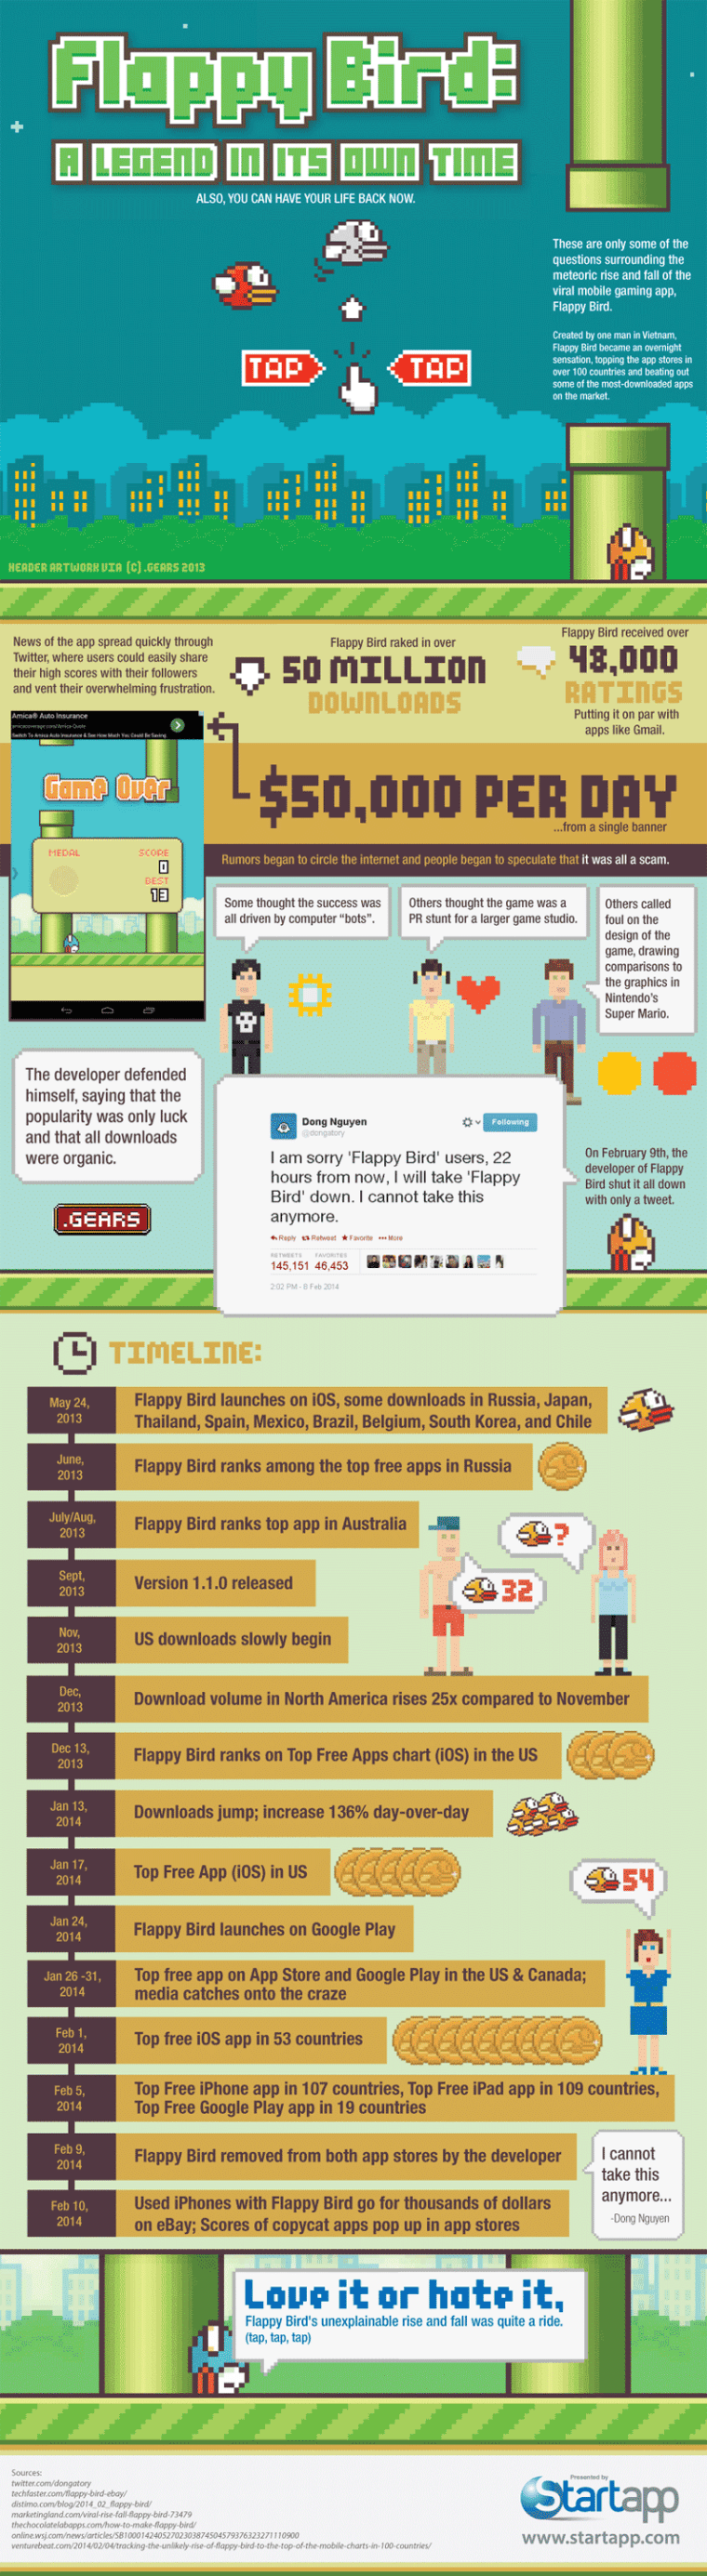 Flappy Bird infographic